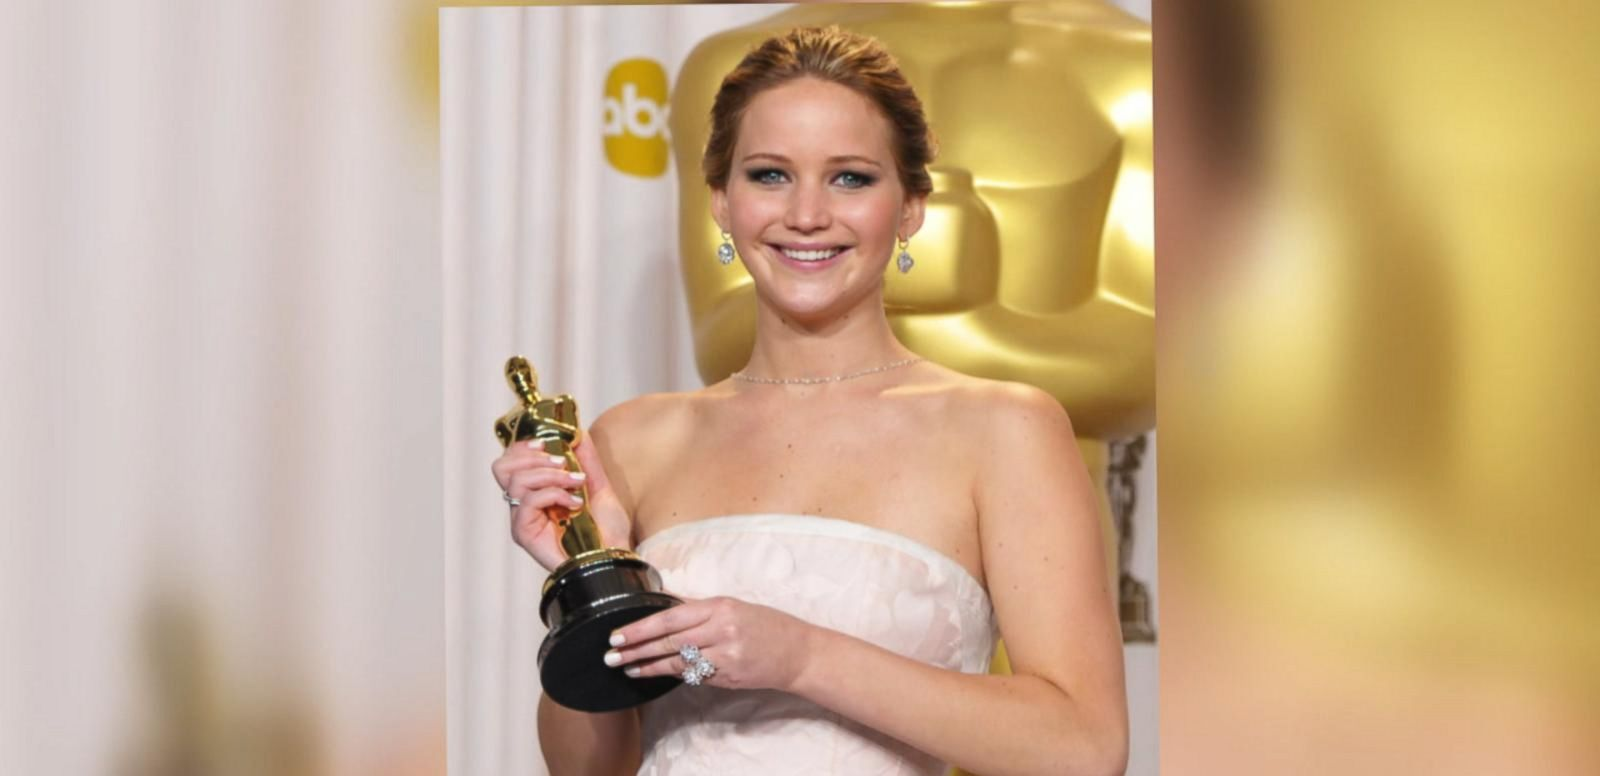 VIDEO: Jennifer Lawrence Named the Highest Grossing Actor in Hollywood